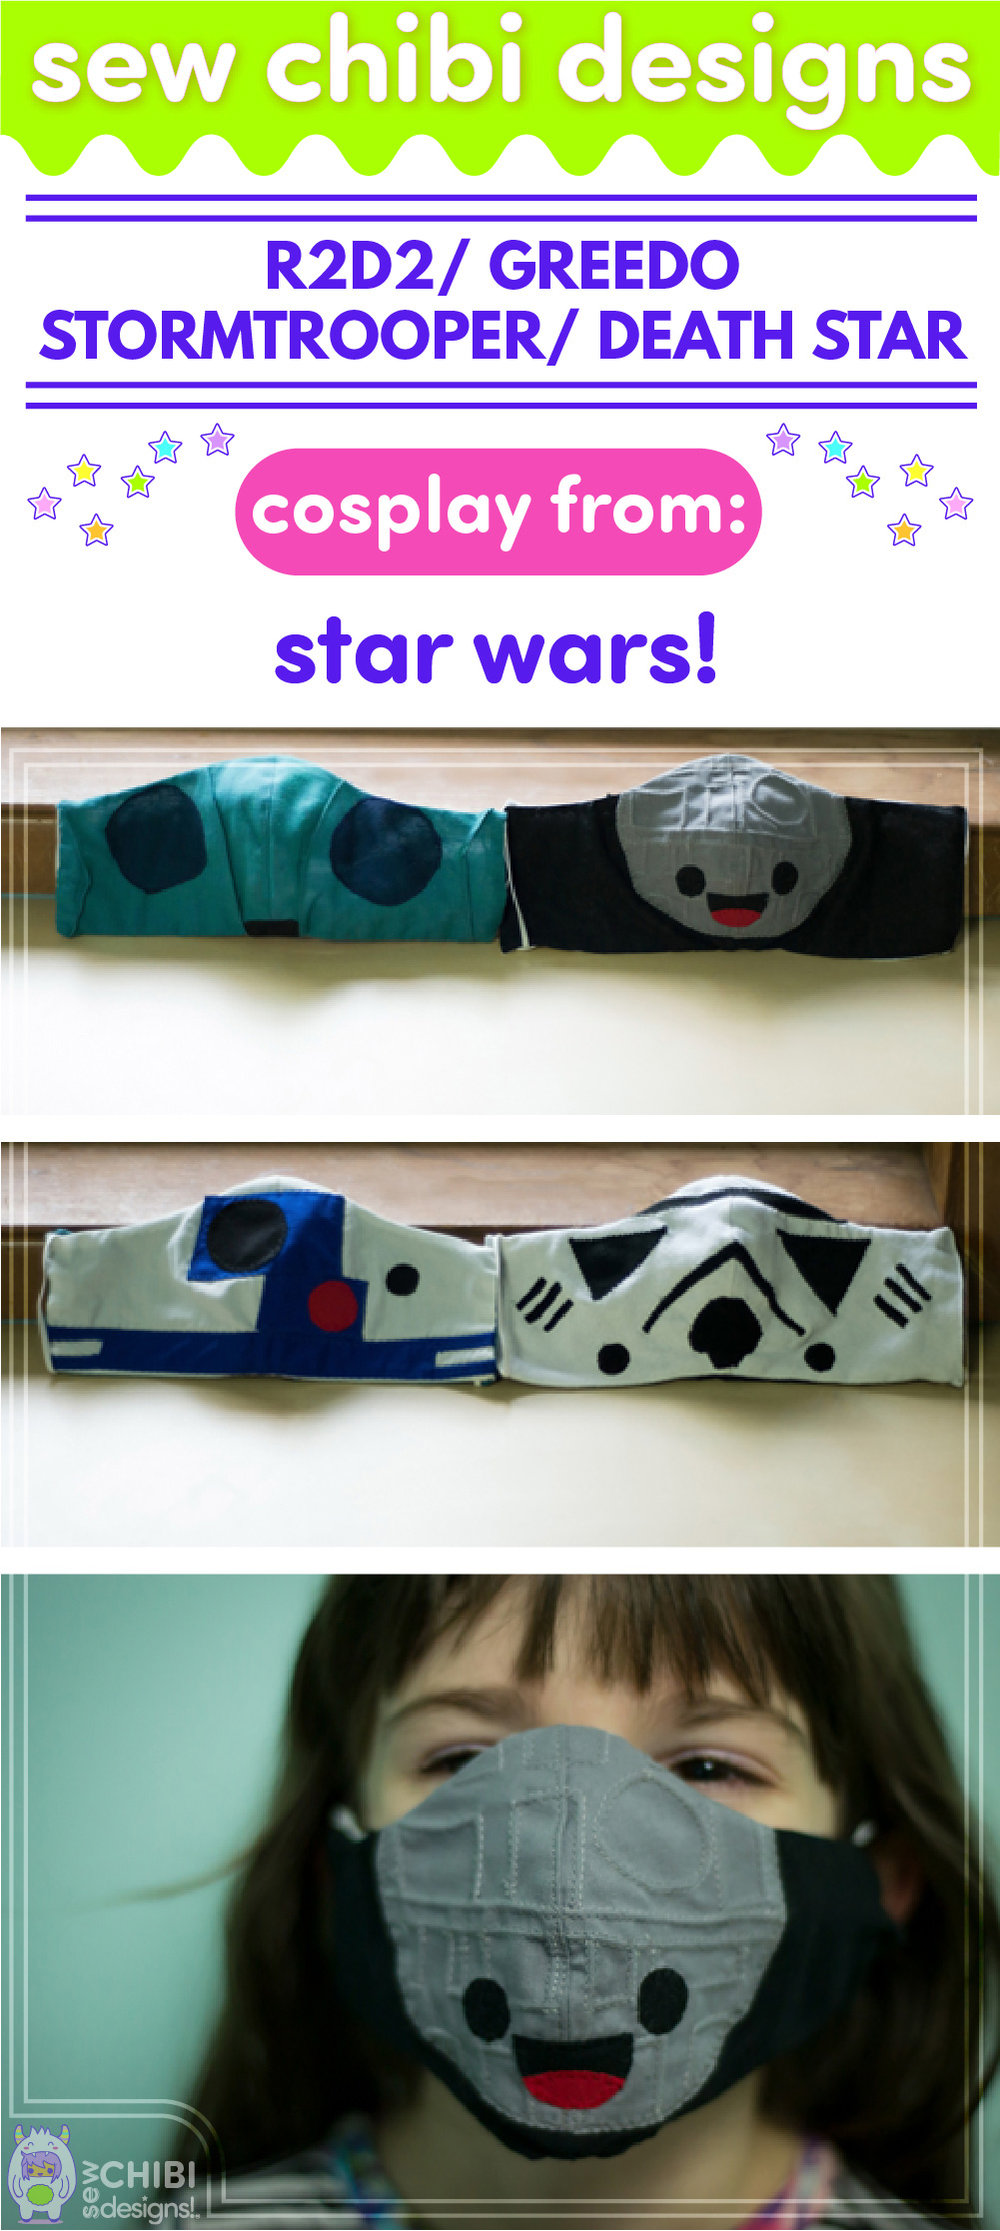 R2D2, Greedo, Stormtrooper, and Death Star chibi cosplay from Star Wars sewn by Sew Chibi Designs for Sew Geeky